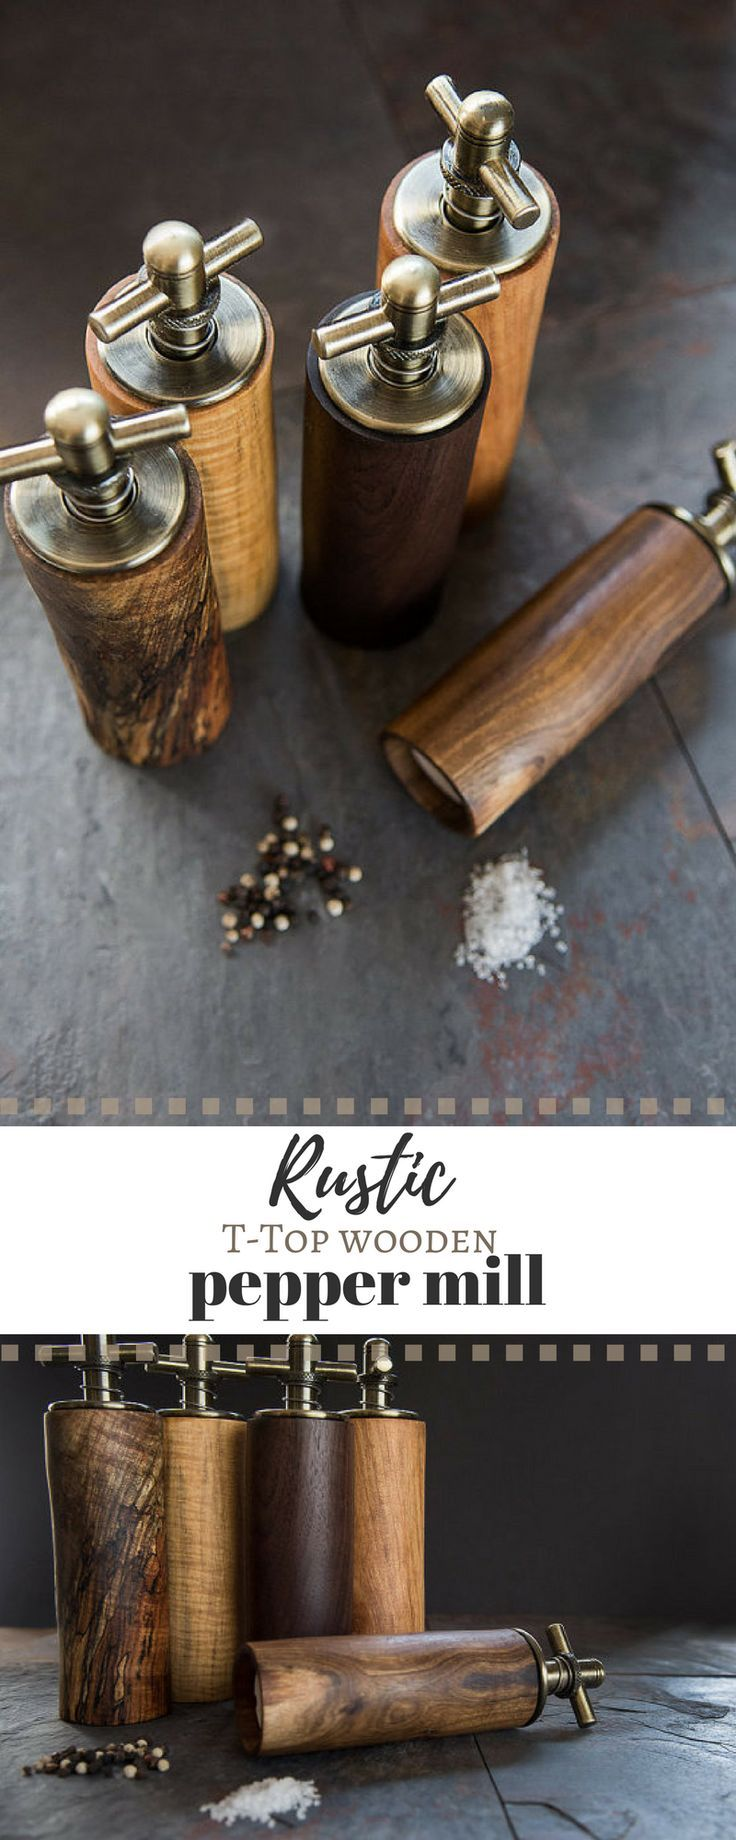 The perfect rustic kitchen accessory. I love this T-Top wooden pepper mill. #commissionlink #rustic #peppermill #wooden #kitchen #housewarminggift #grinder #giftideas